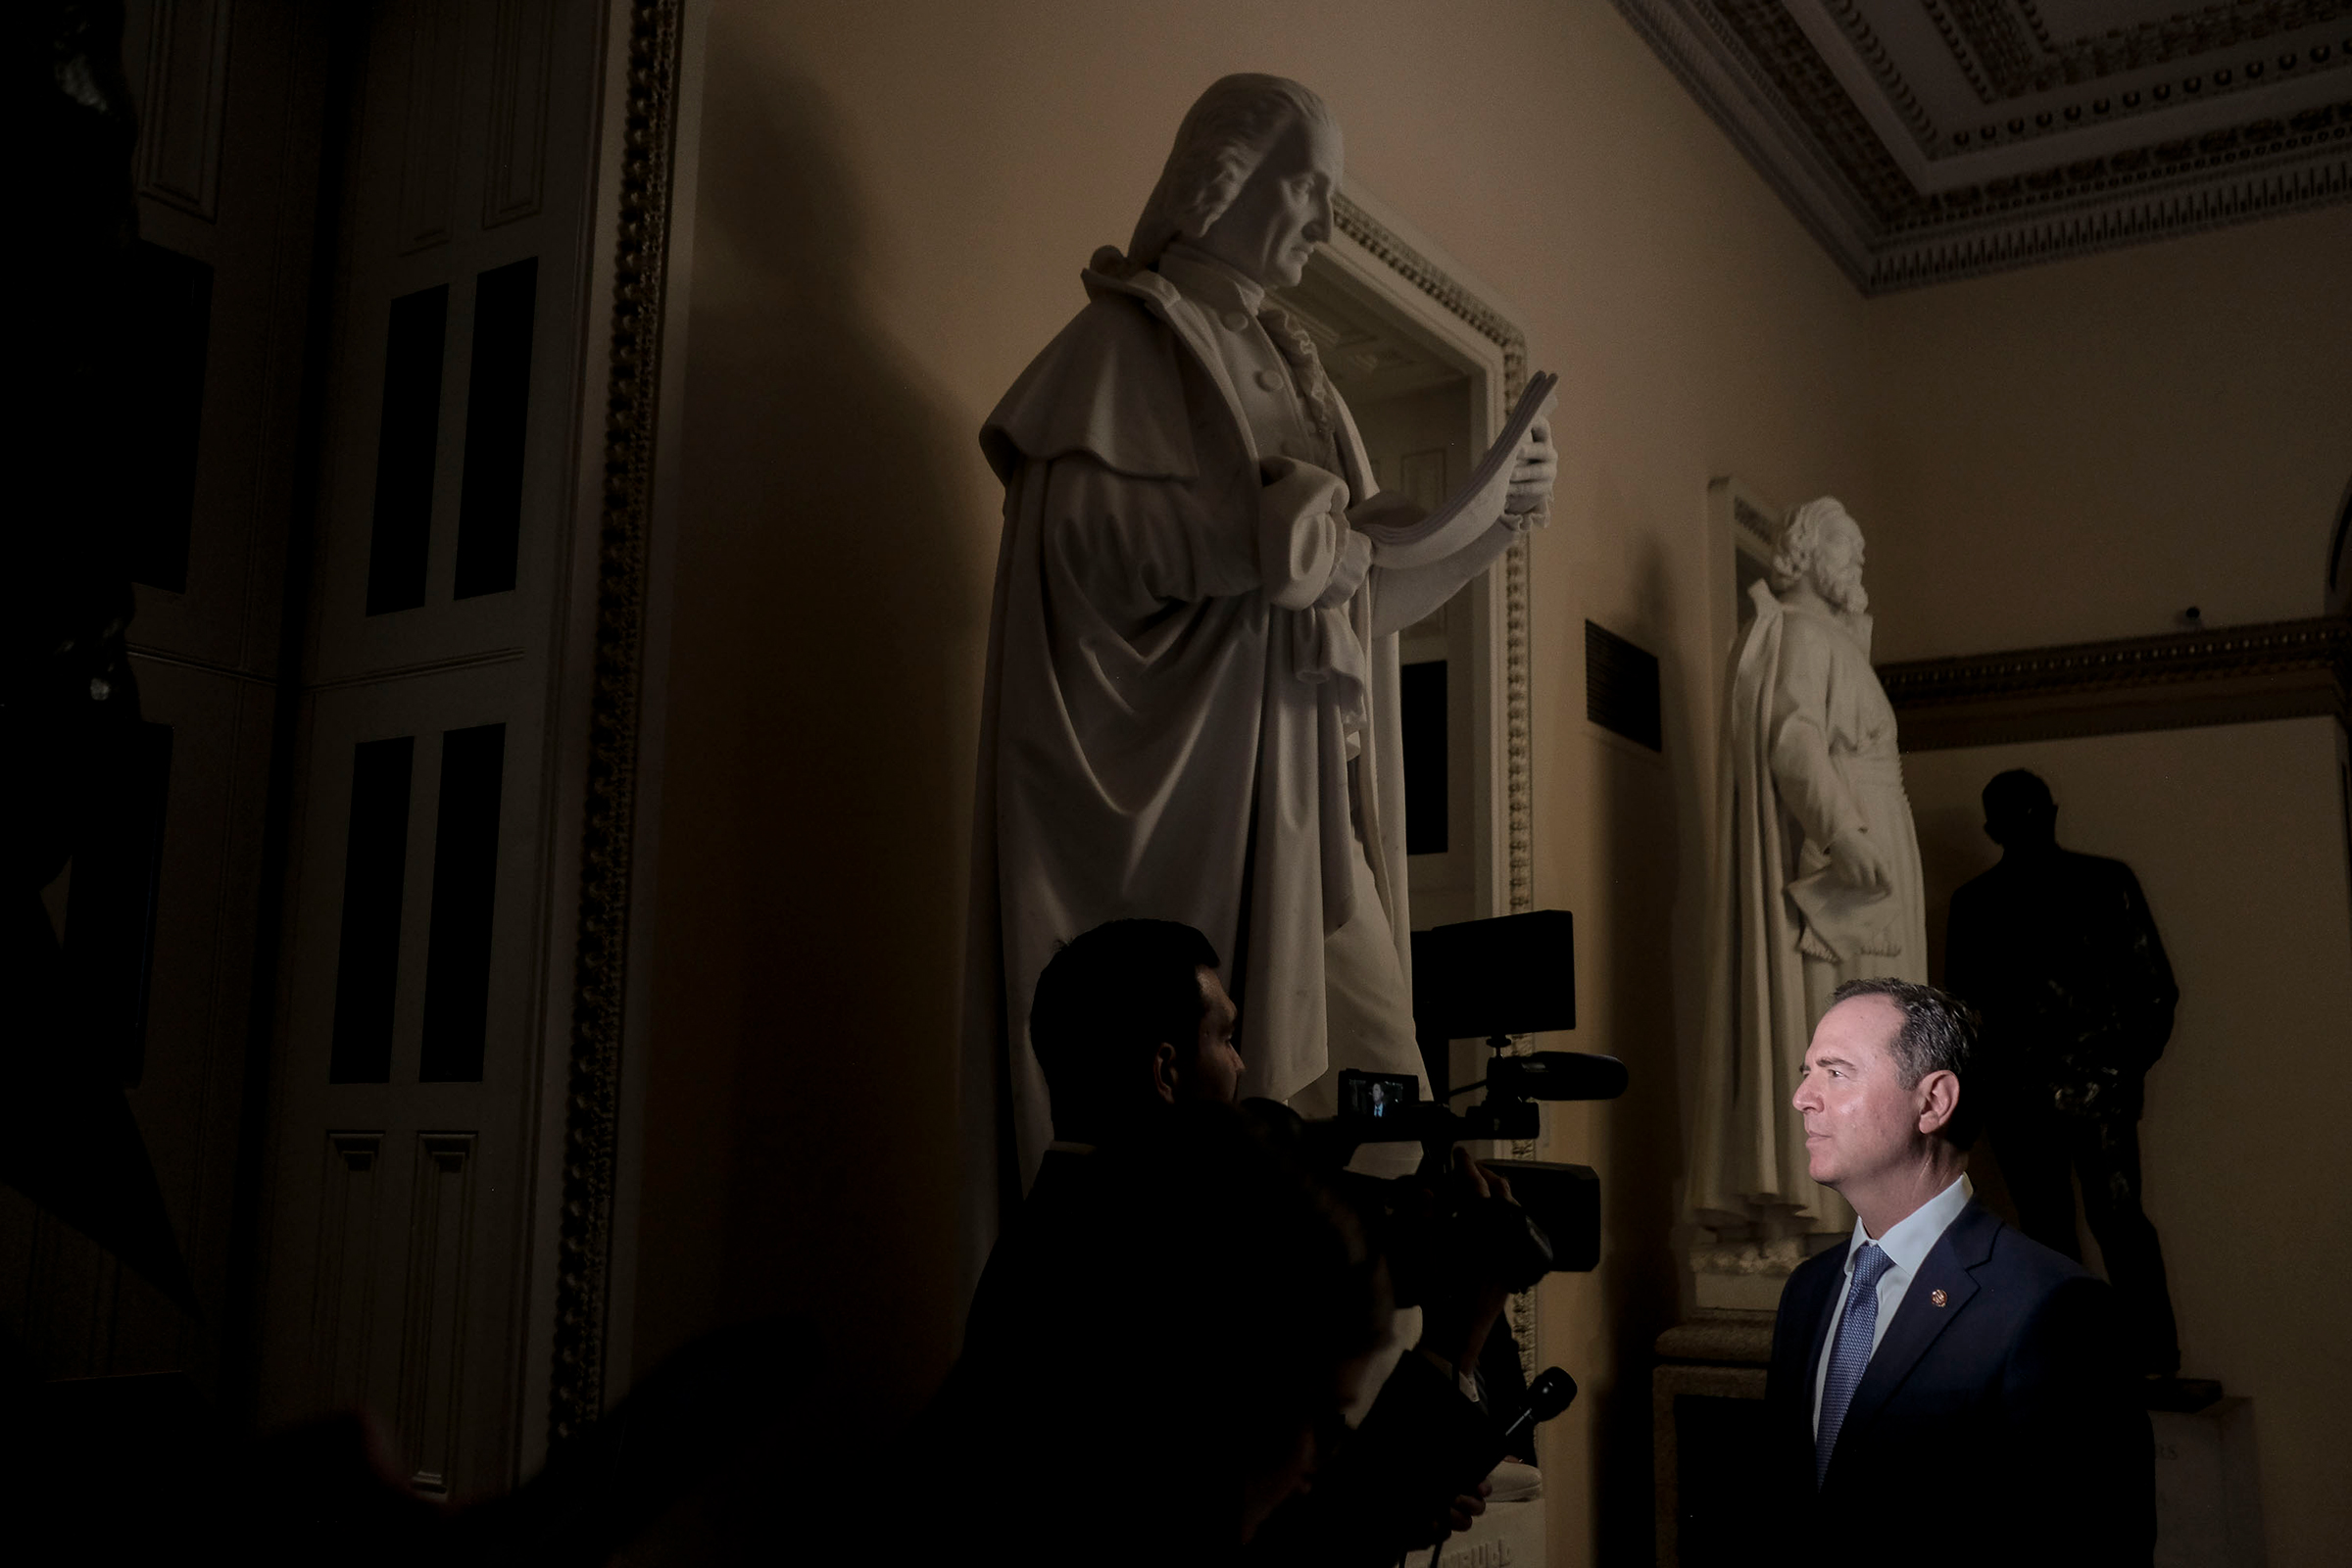 House Democrats' lead impeachment manager Rep. Adam Schiff speaks to a reporter before the Senate trial vote at the Capitol in Washington, D.C., on Feb. 5, 2020.